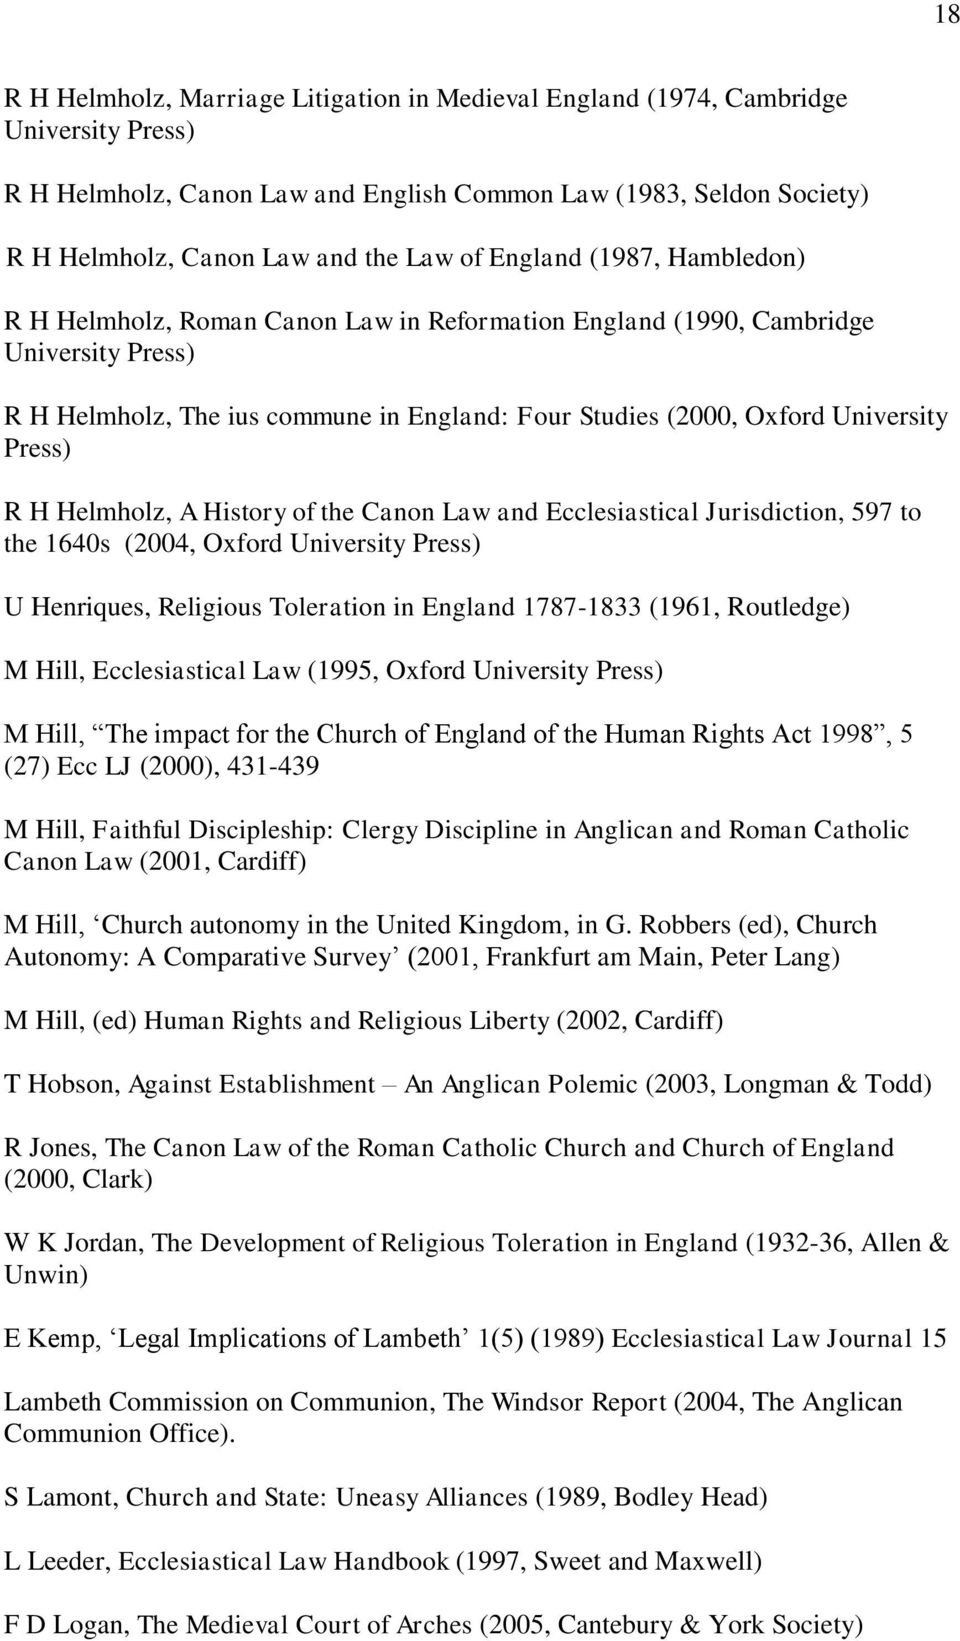 Press) R H Helmholz, A History of the Canon Law and Ecclesiastical Jurisdiction, 597 to the 1640s (2004, Oxford University Press) U Henriques, Religious Toleration in England 1787-1833 (1961,